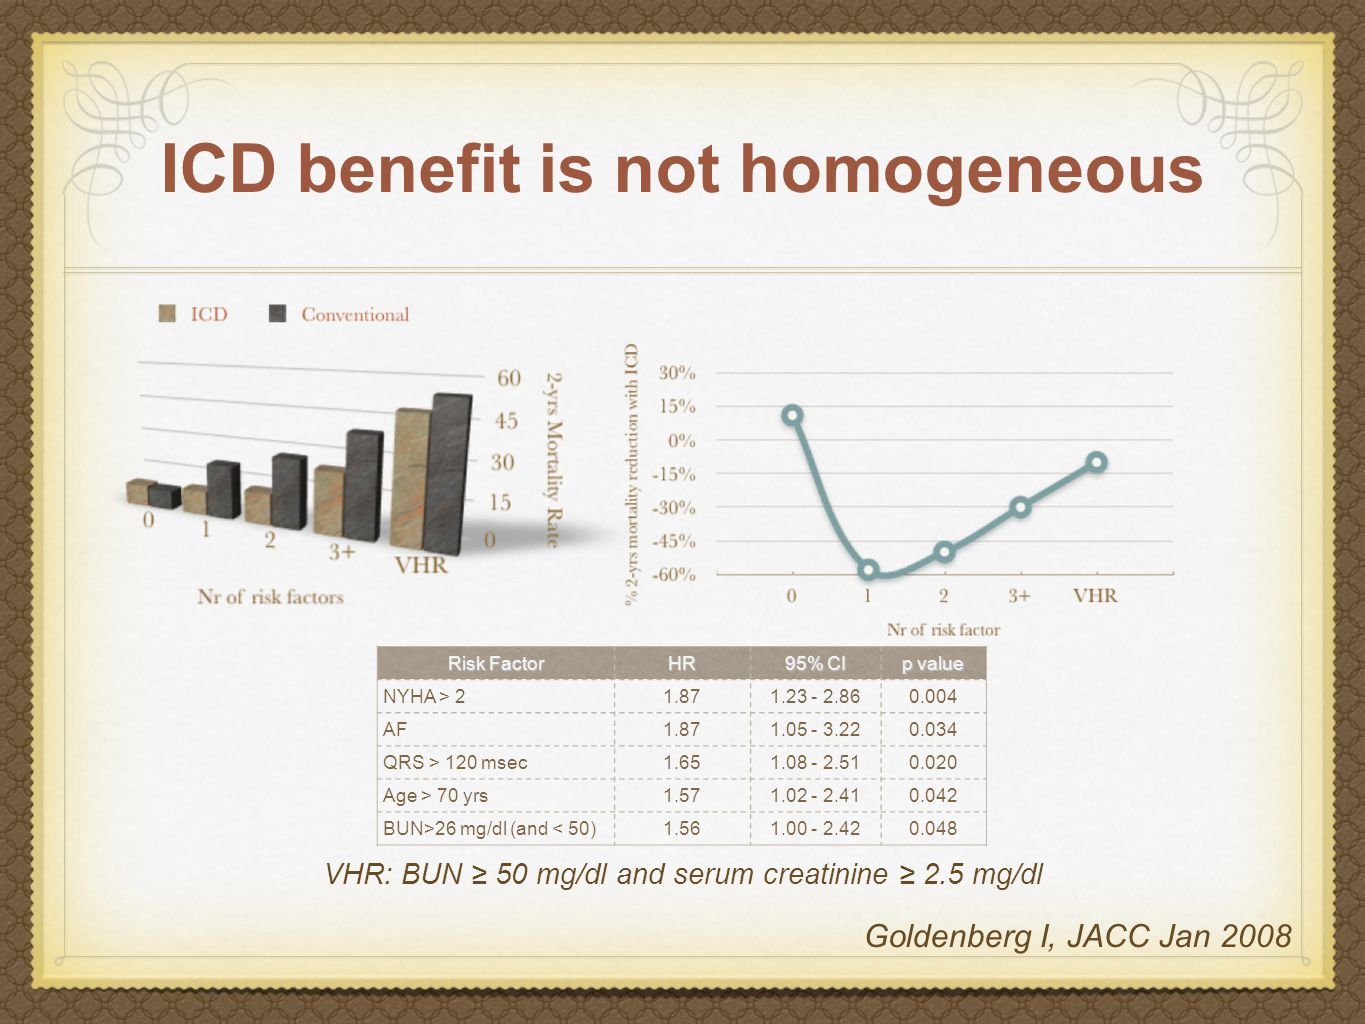 ICD benefit is not homogeneous Risk Factor HR 95% CI p value NYHA > 21.871.23 - 2.860.004 AF1.871.05 - 3.220.034 QRS > 120 msec1.651.08 - 2.510.020 Age > 70 yrs1.571.02 - 2.410.042 BUN>26 mg/dl (and < 50)1.561.00 - 2.420.048 VHR: BUN ≥ 50 mg/dl and serum creatinine ≥ 2.5 mg/dl Goldenberg I, JACC Jan 2008